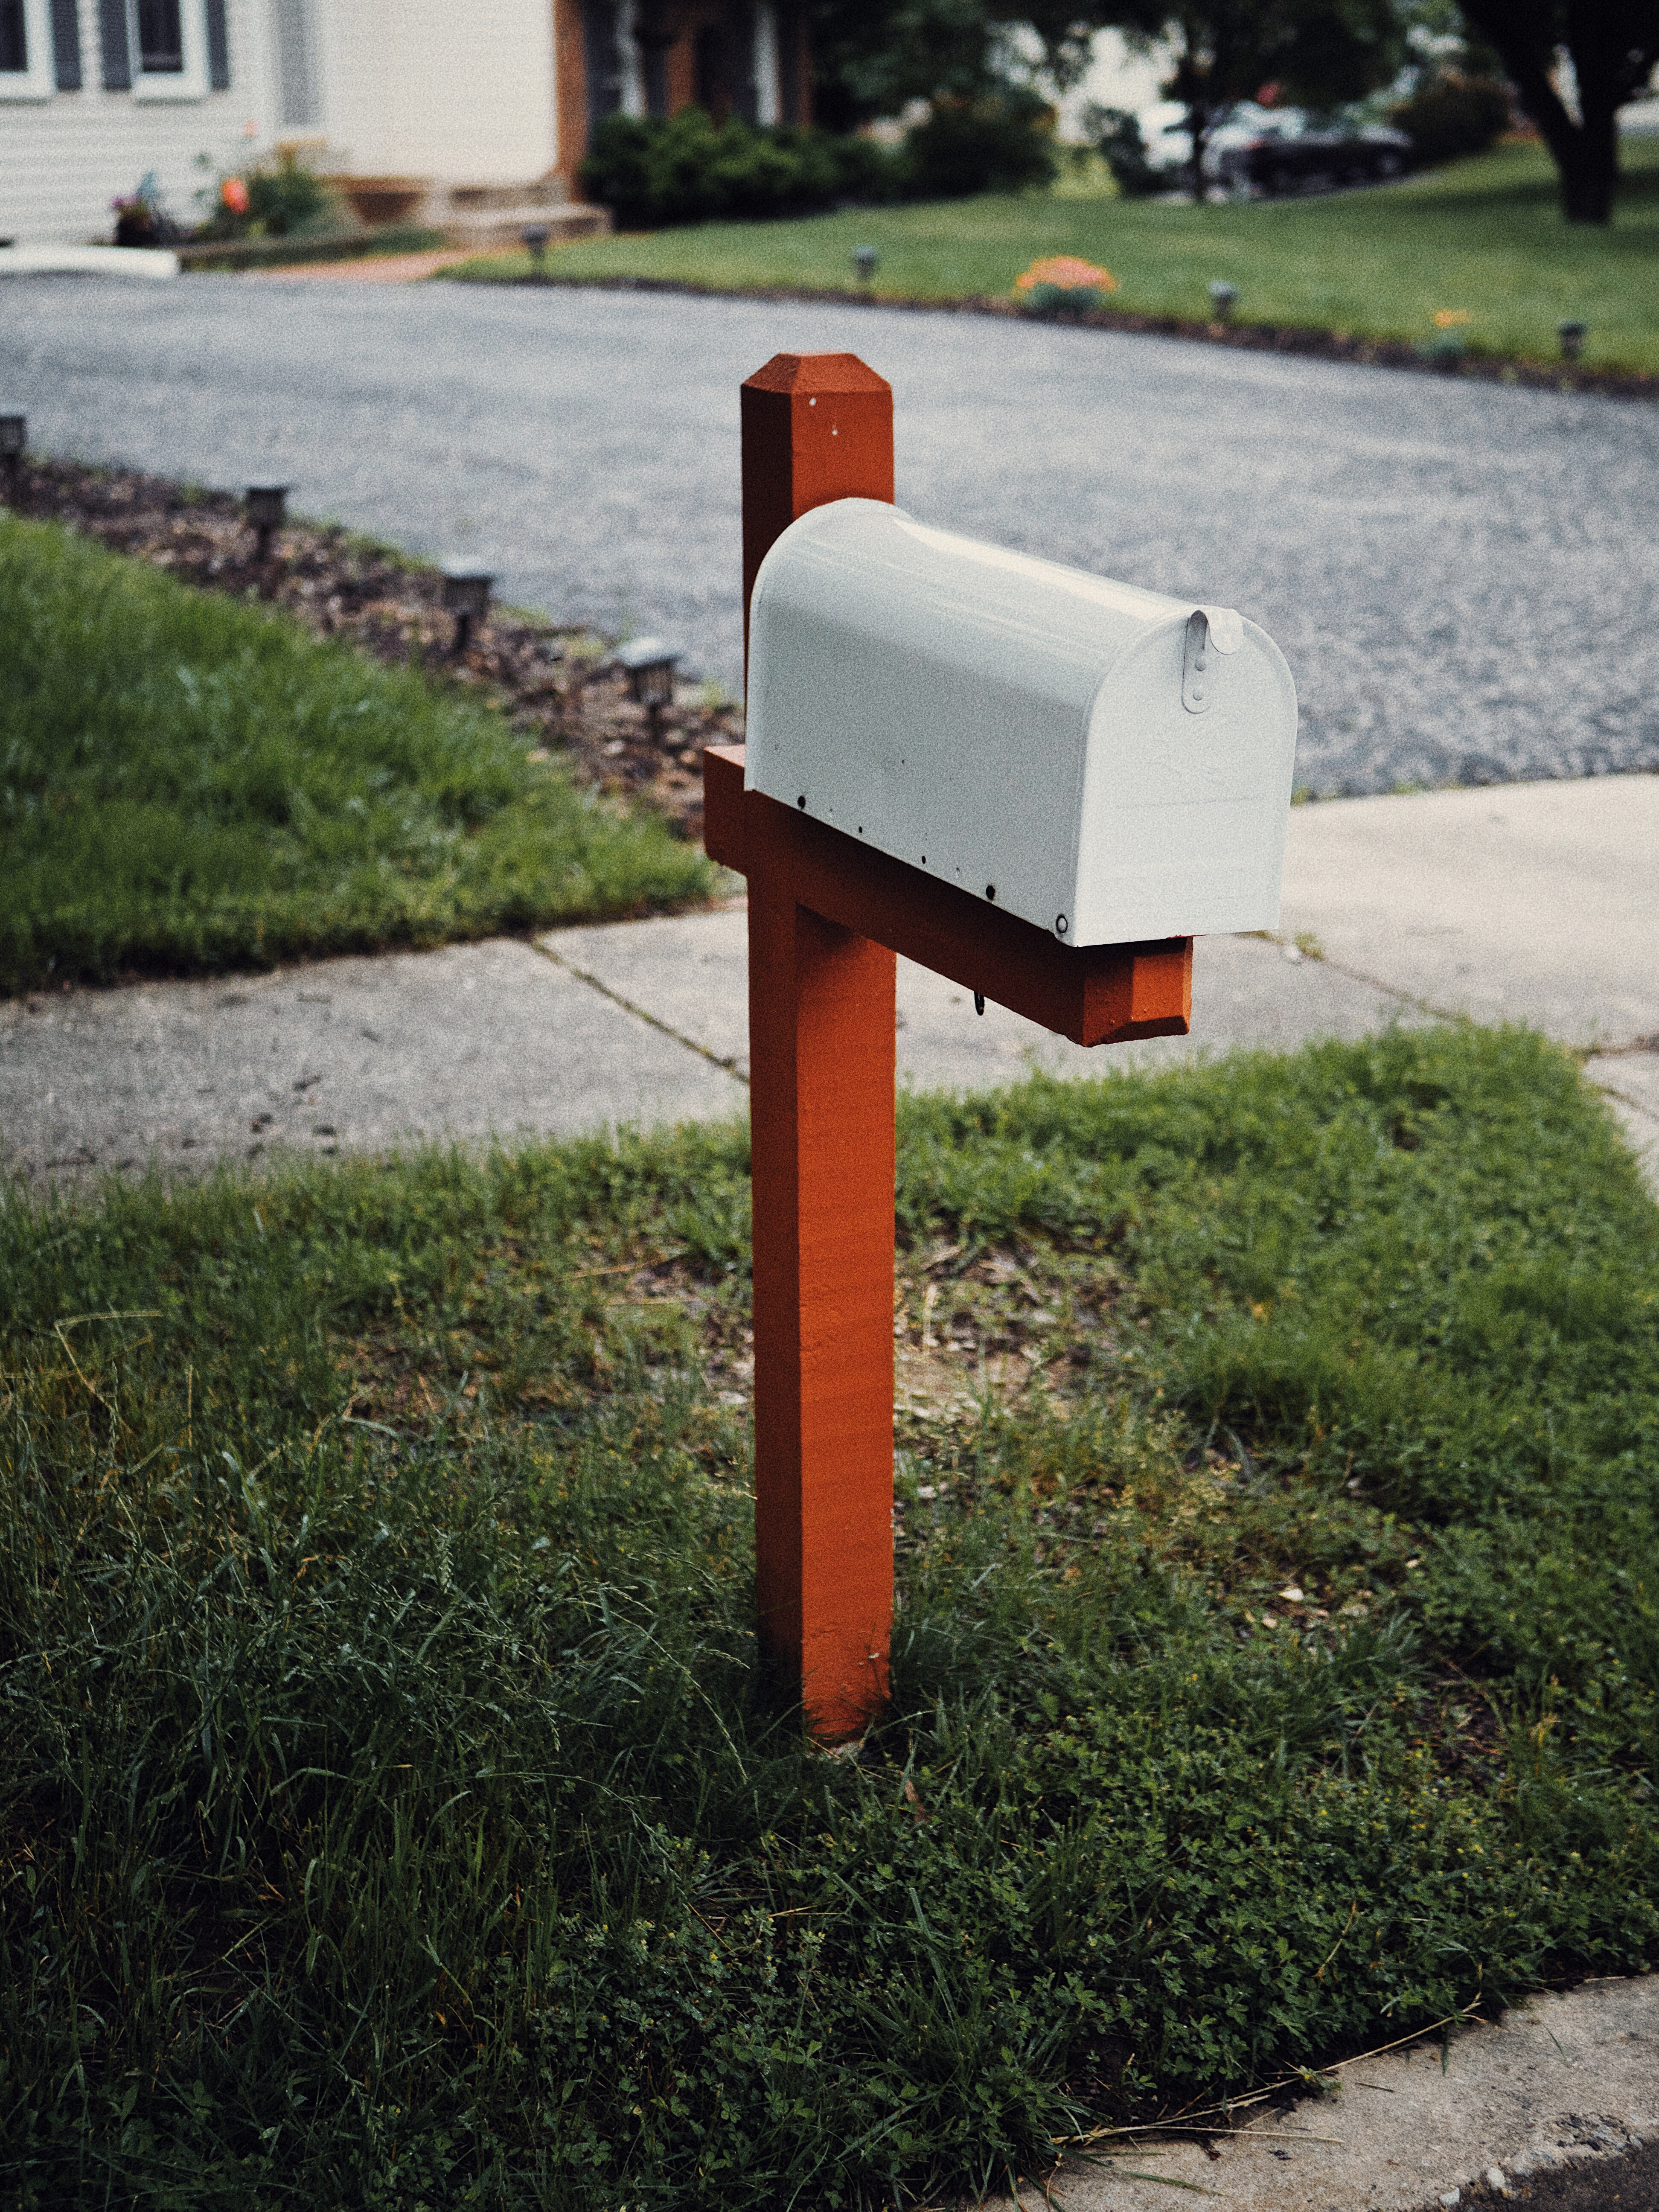 White mailbox in front of a side walk and the side of a house with a green lawn